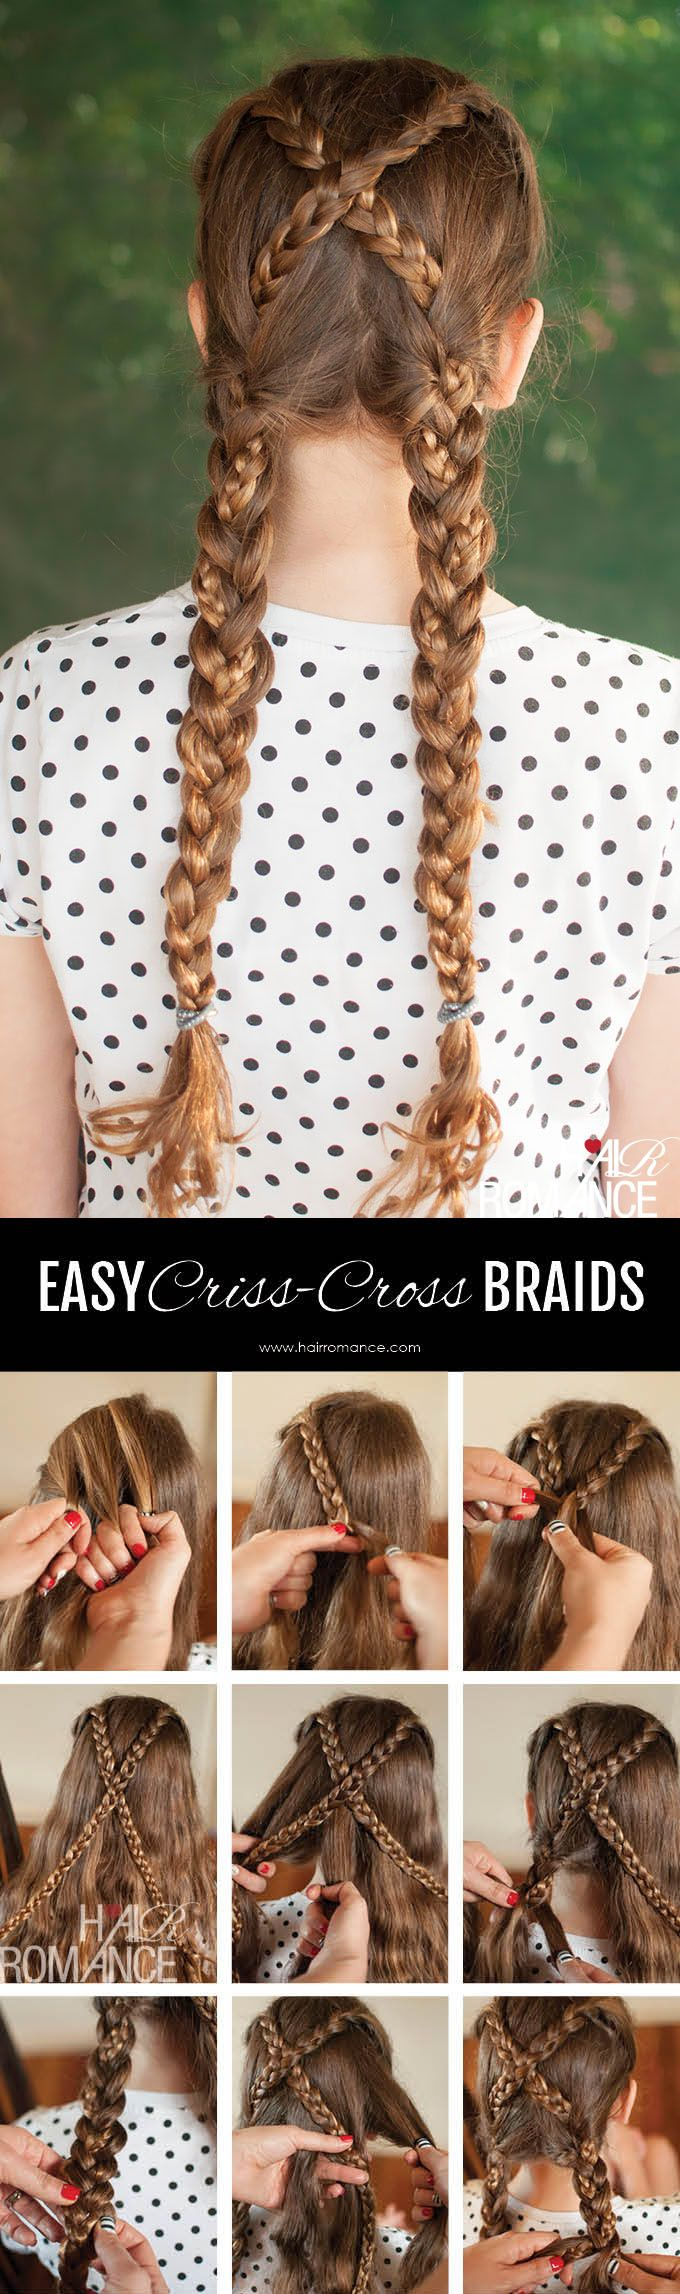 school hairstyles - criss